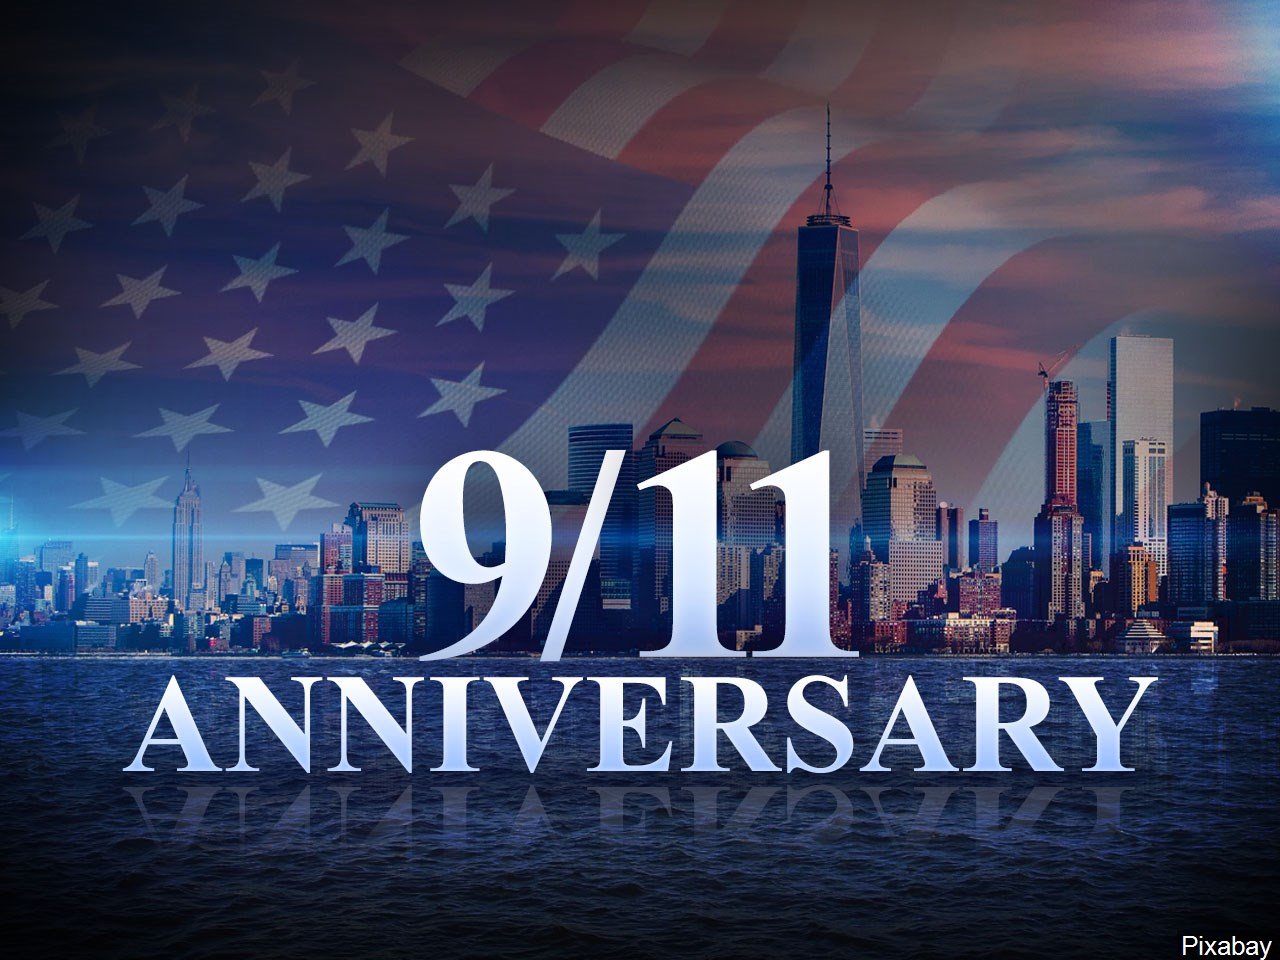 WE REMEMBER 9/11: Teaching a generation who wasn't even born